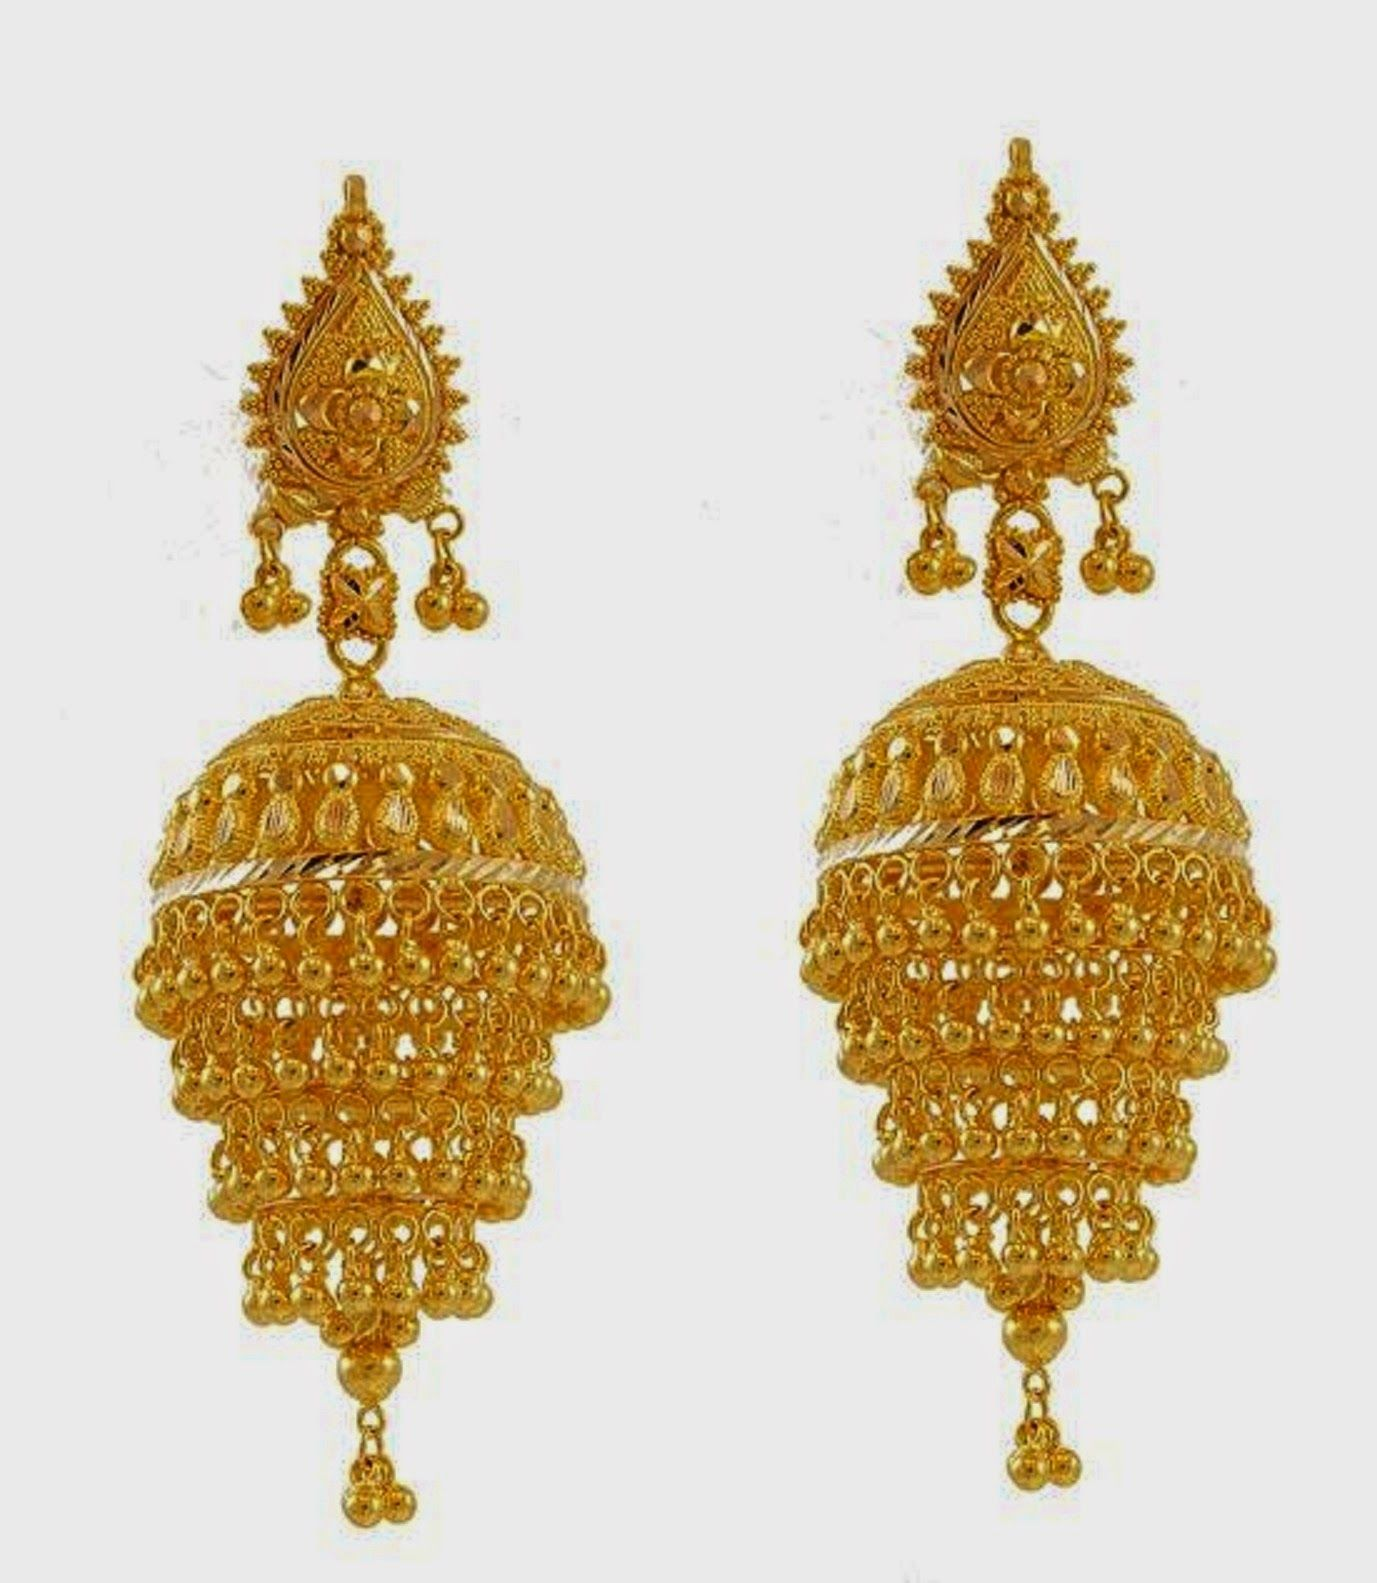 gold-jhumka-earring-designs.jpg (1377×1583) | JUMKA/JIMKI DESIGNS ...